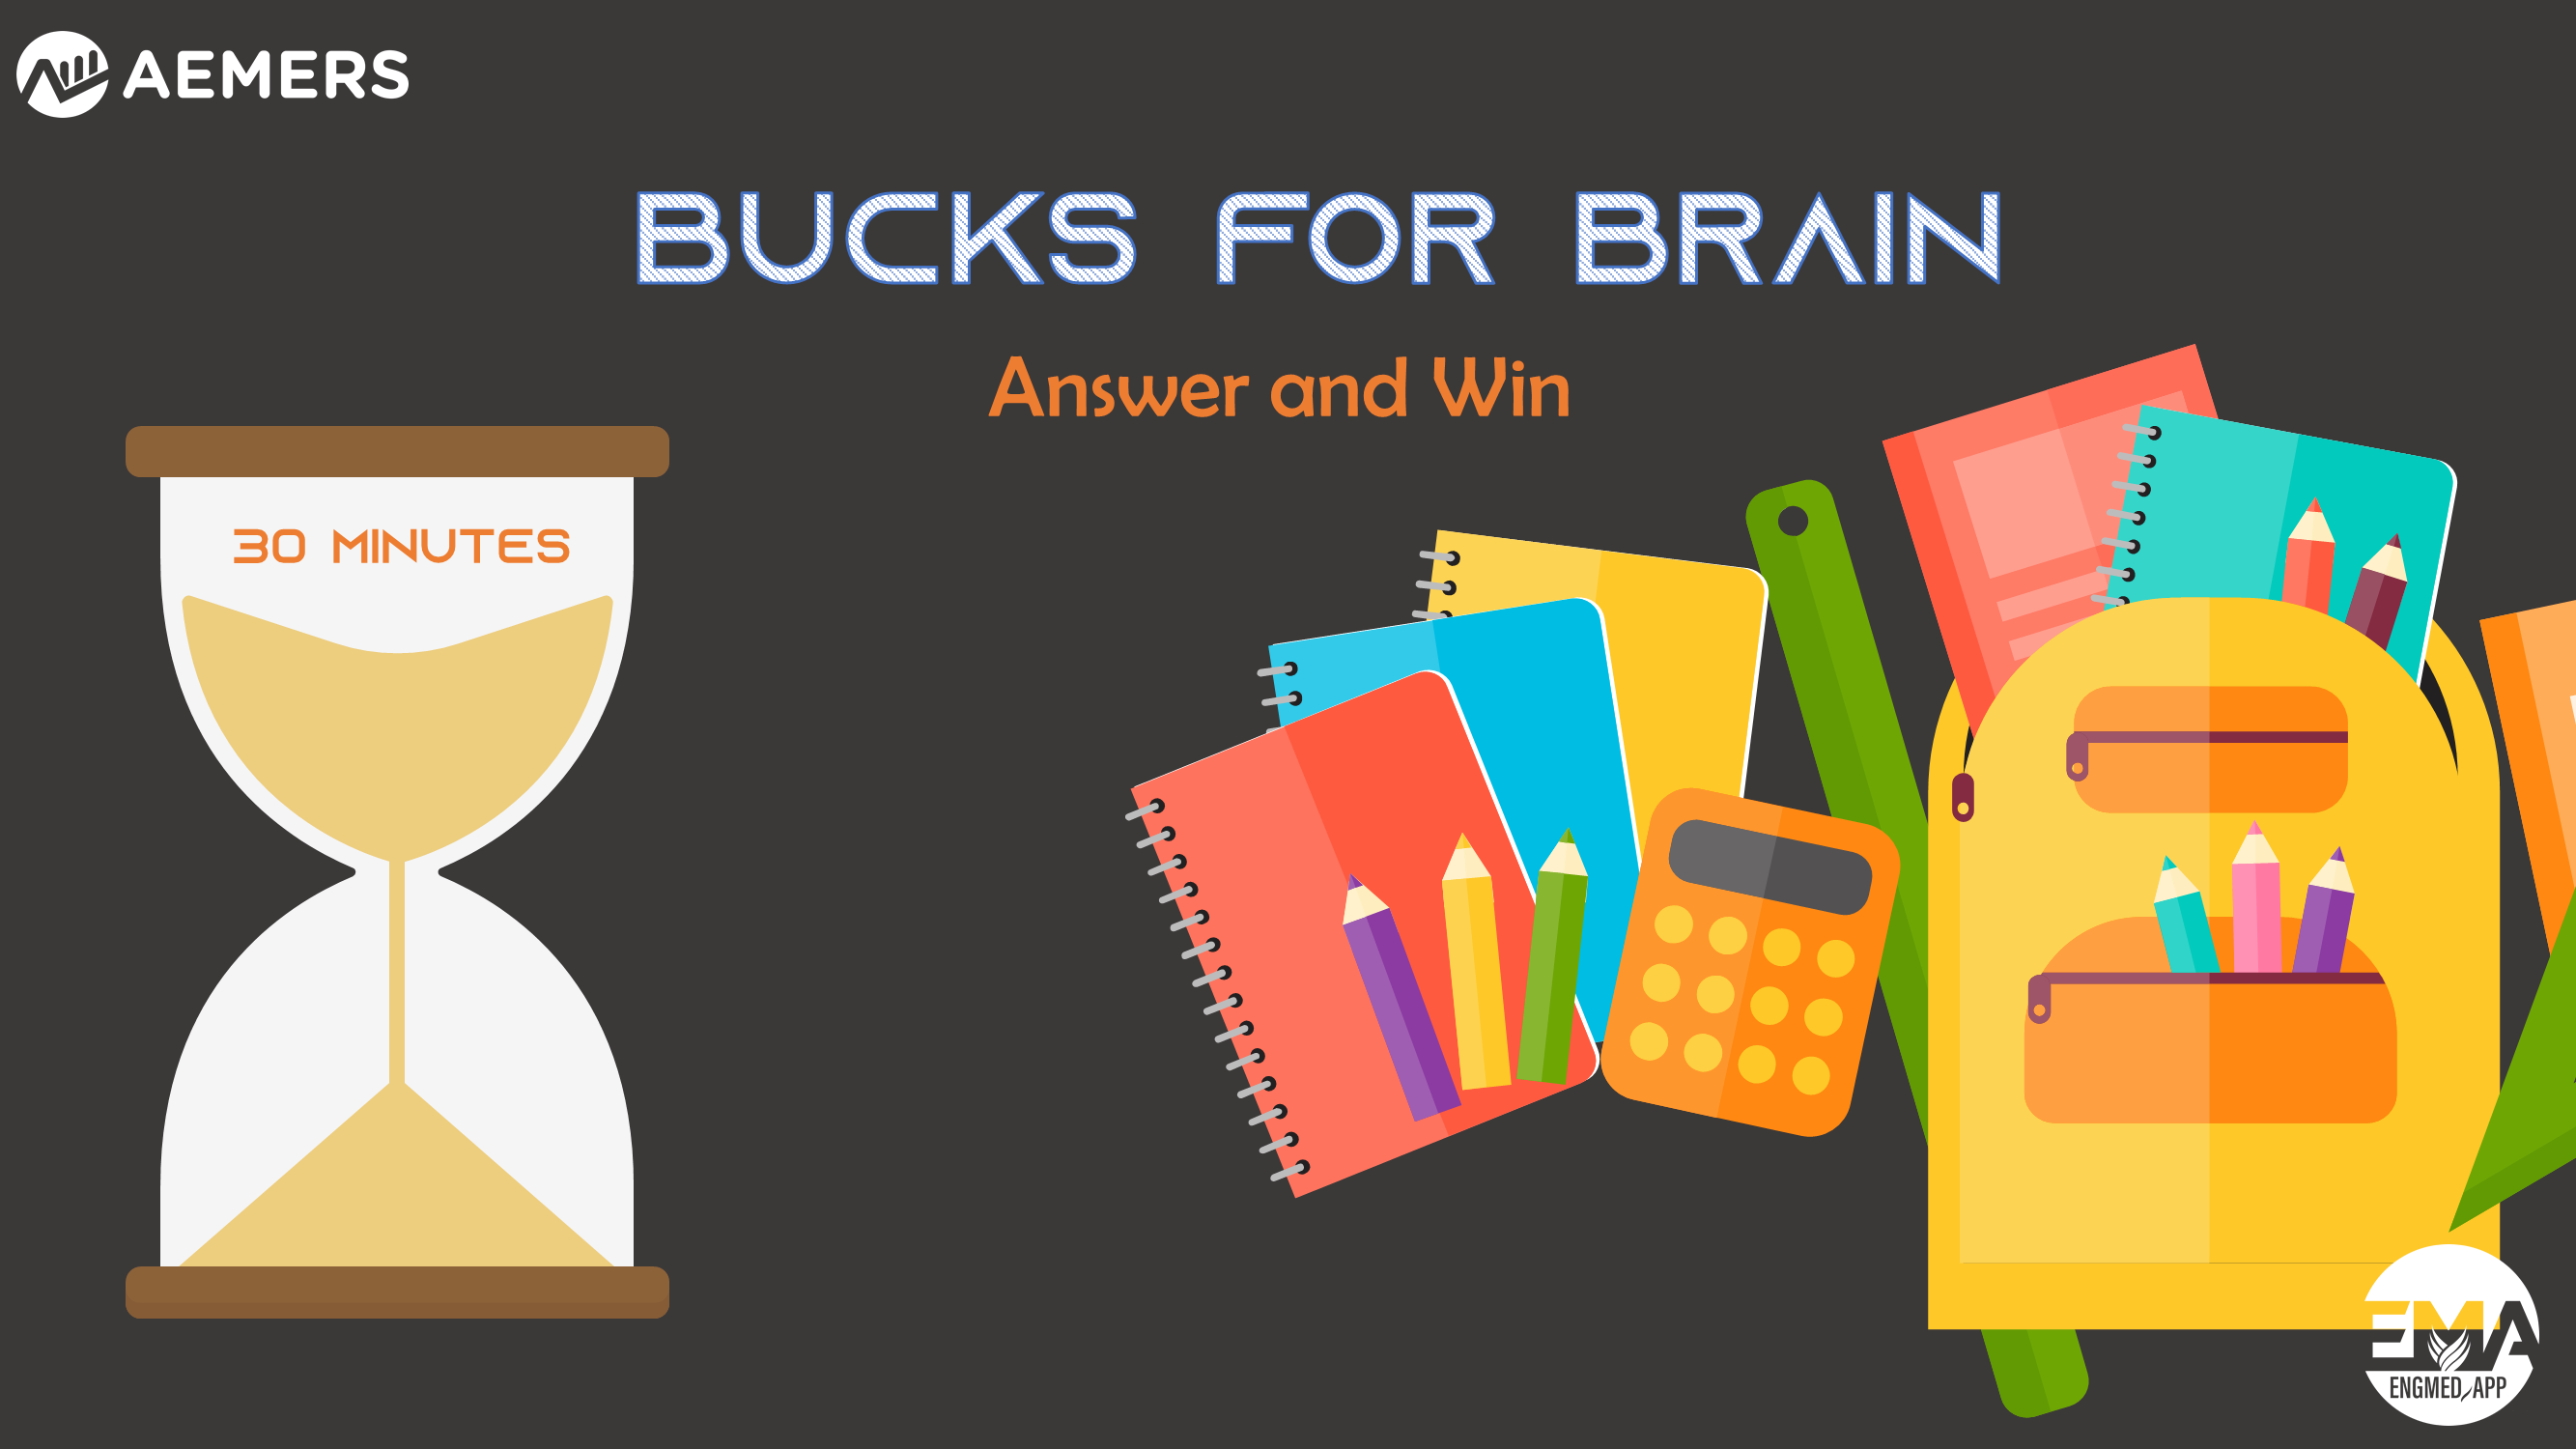 Bucks for Brain